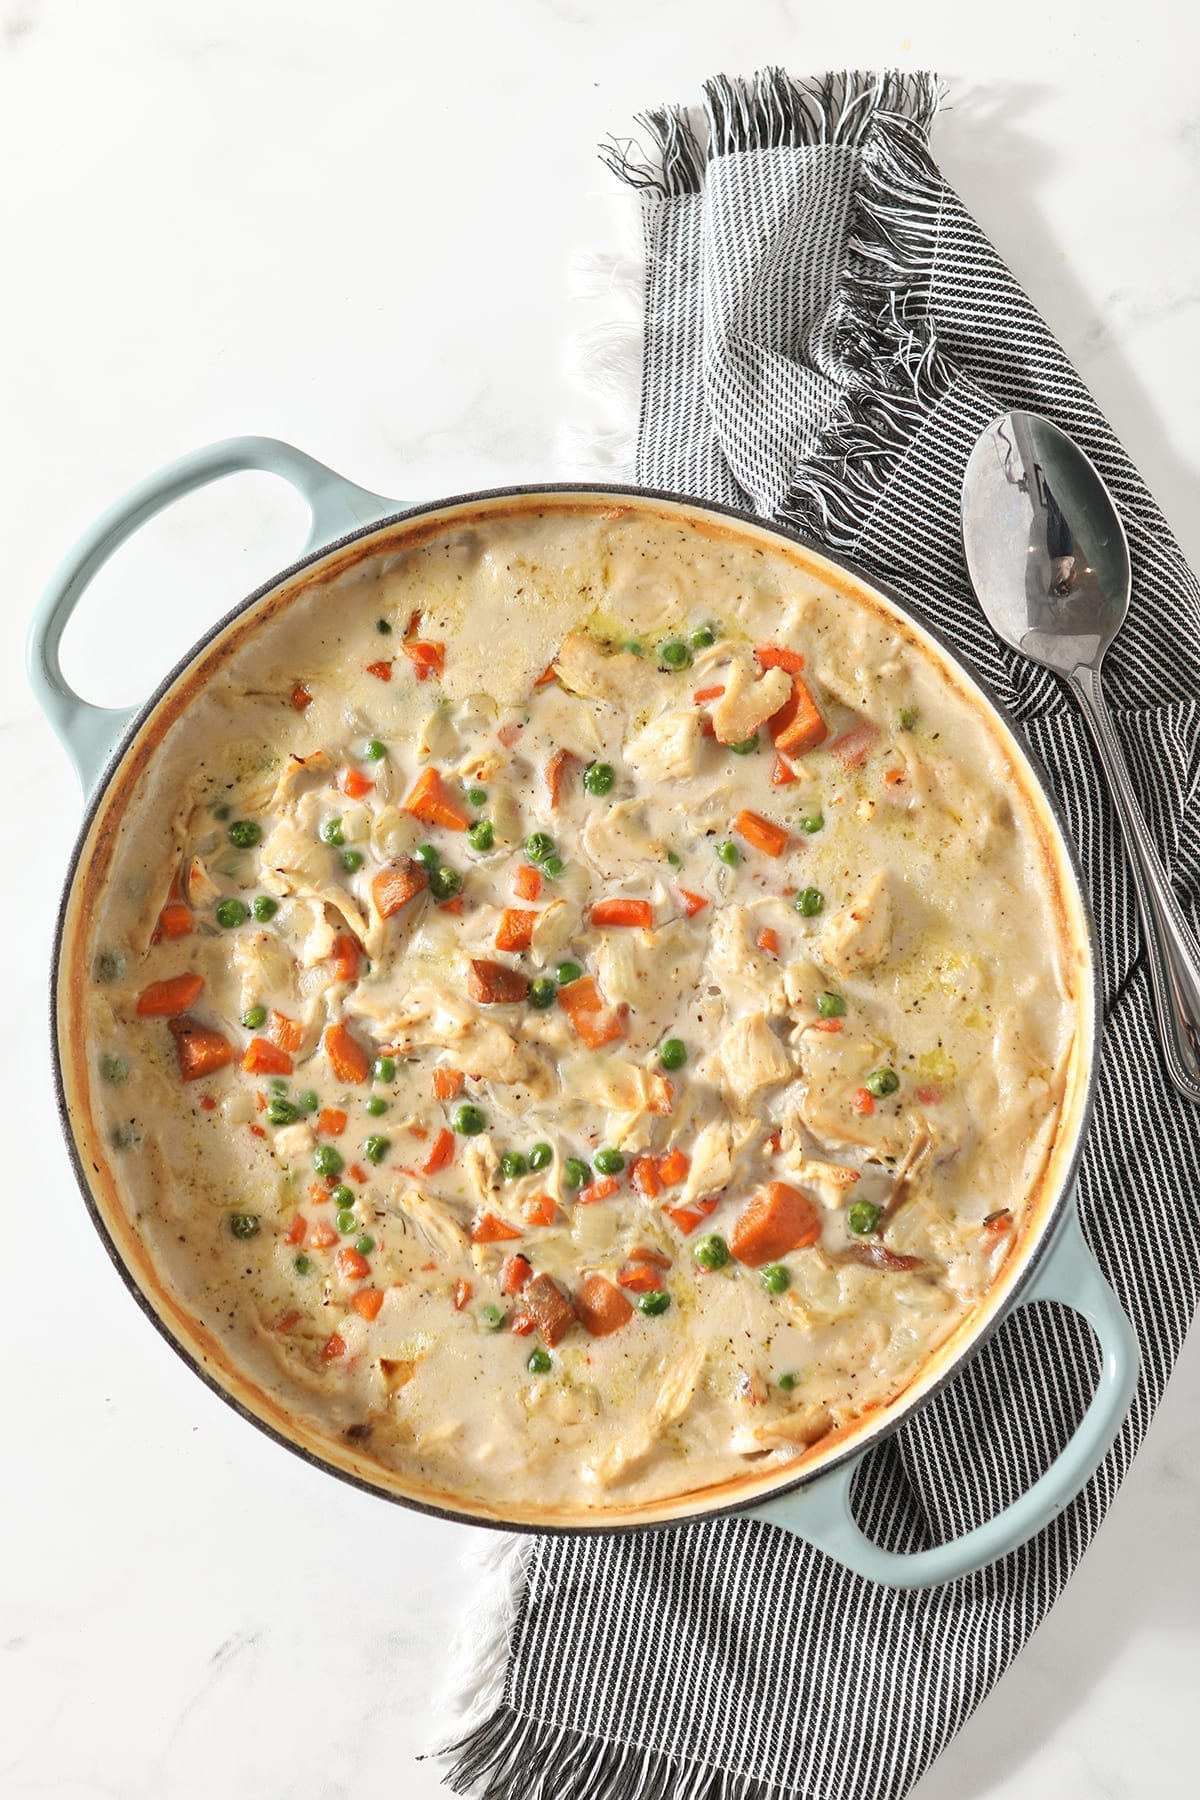 A dish holds turkey pot pie after baking in the oven on top of a striped gray towel with a large serving spoon